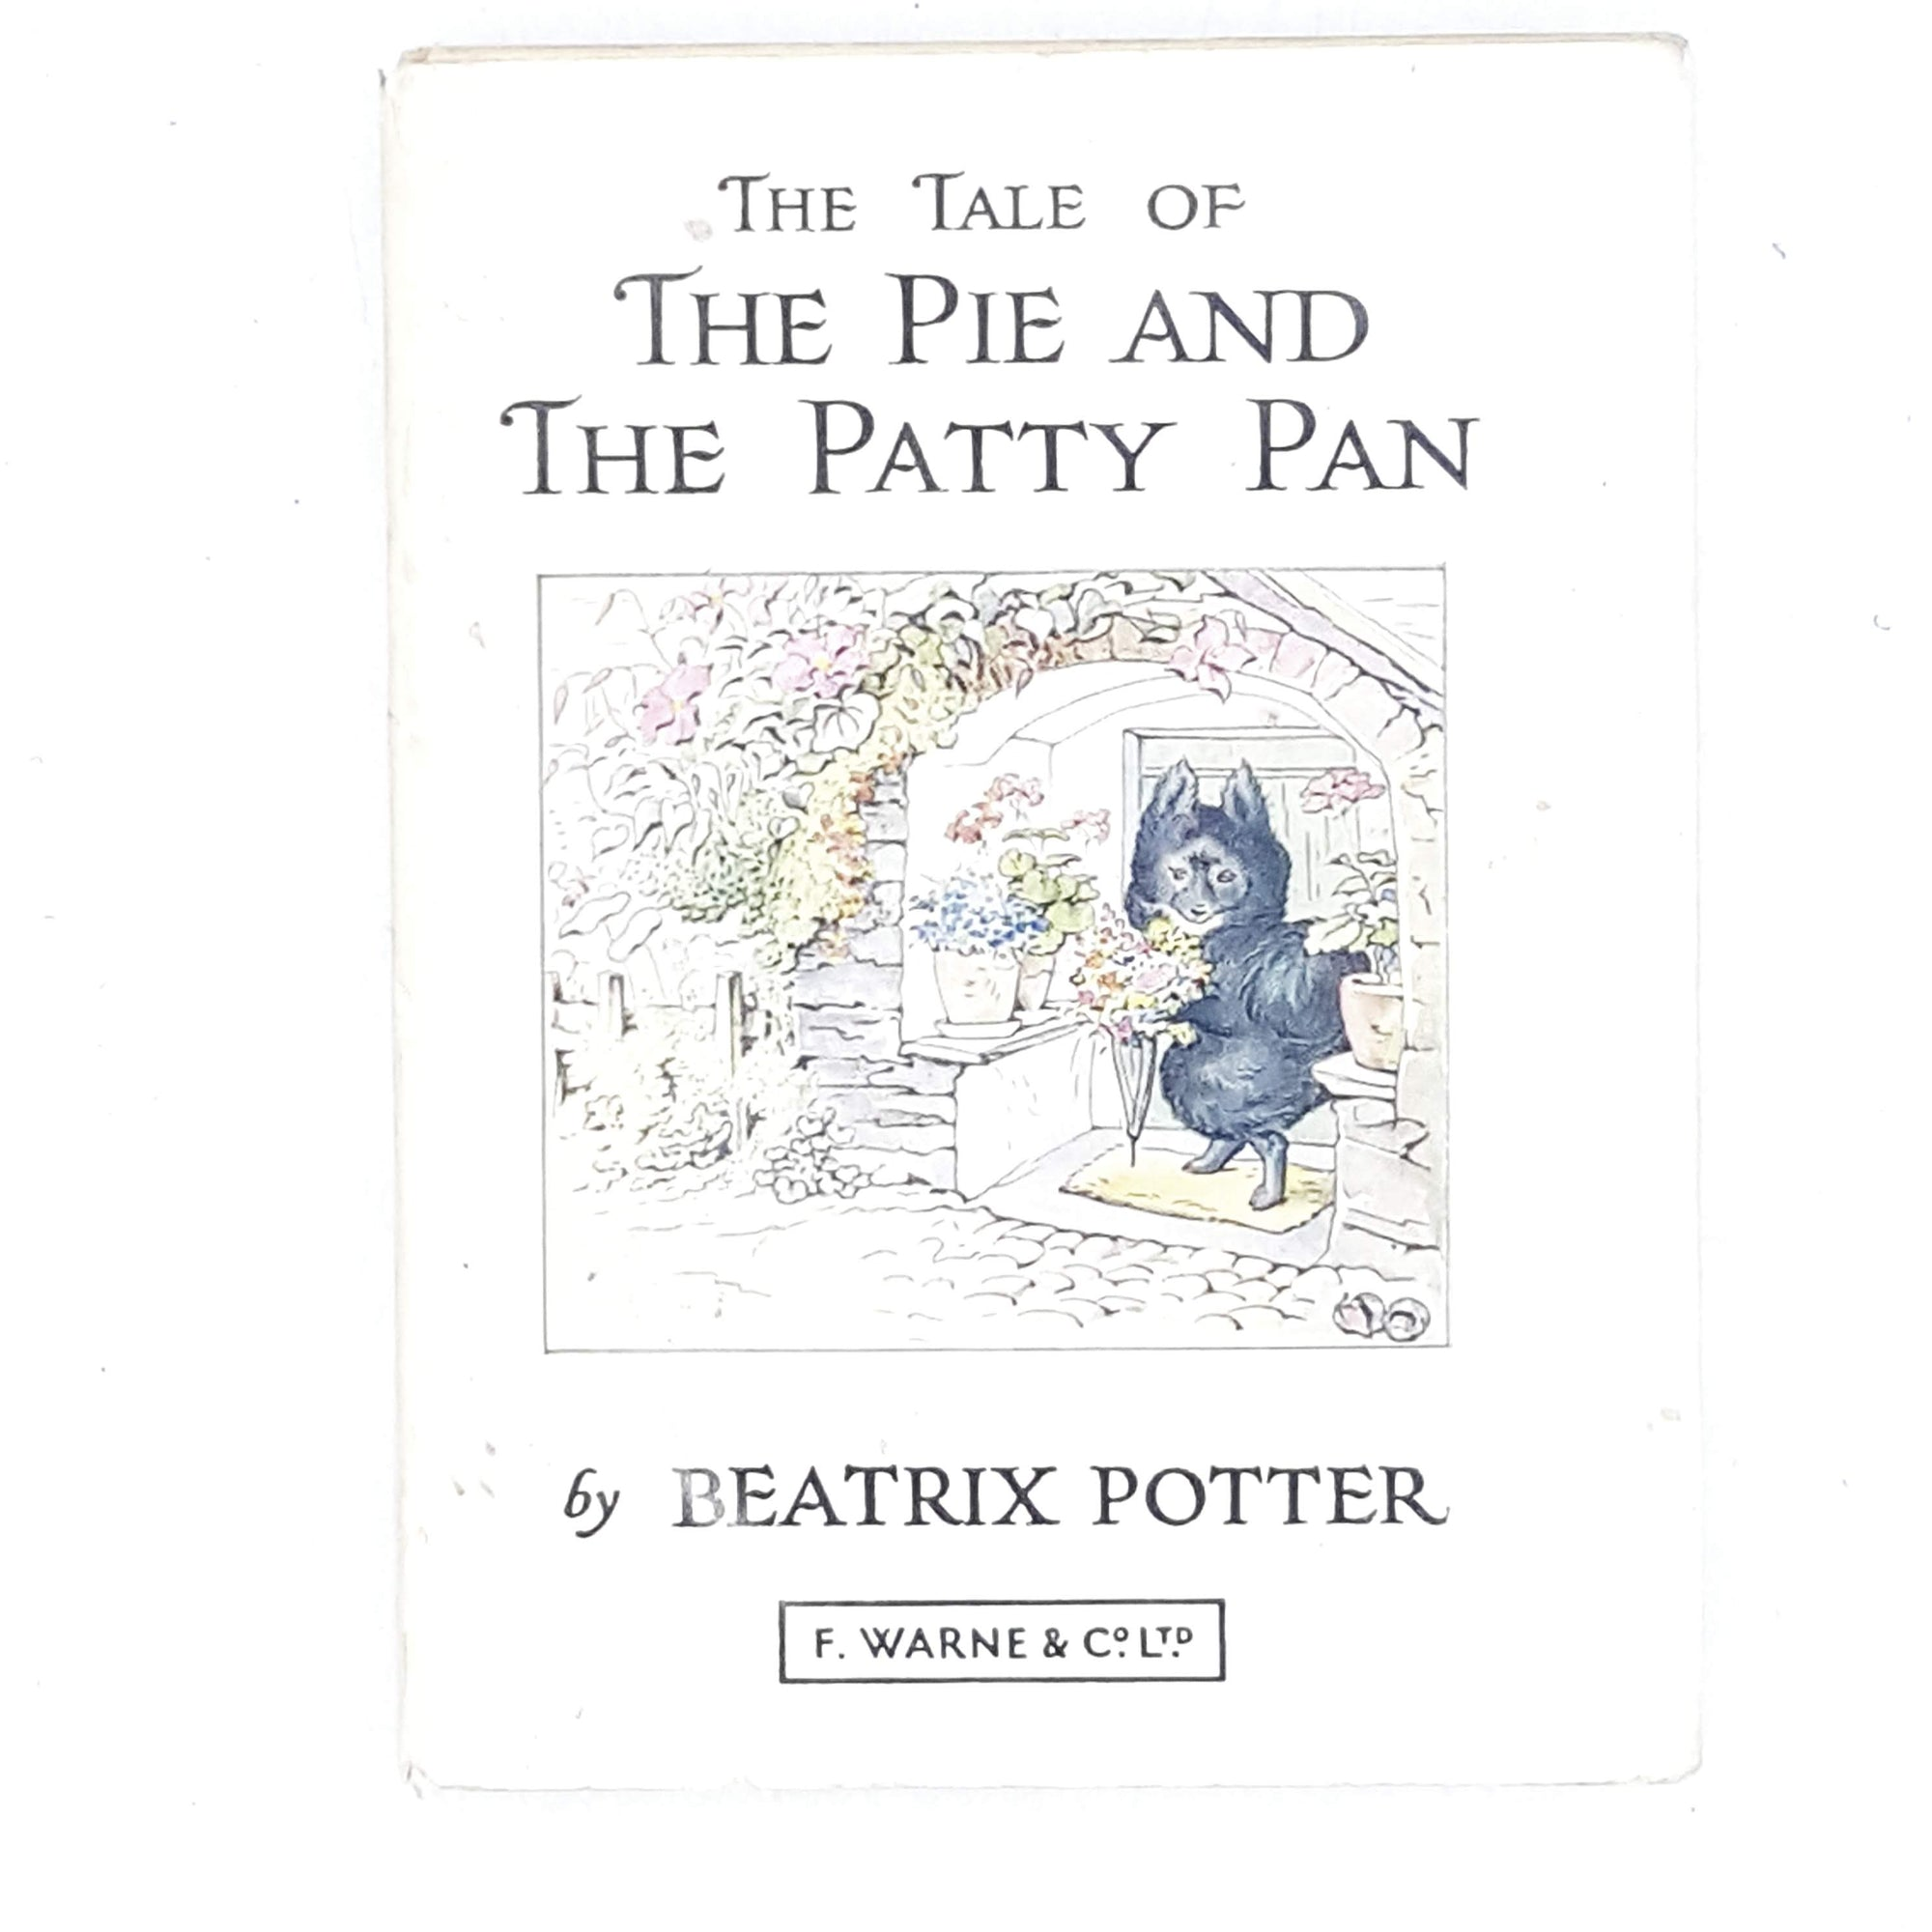 Beatrix Potter's The Tale of The Pie and the Patty Pan